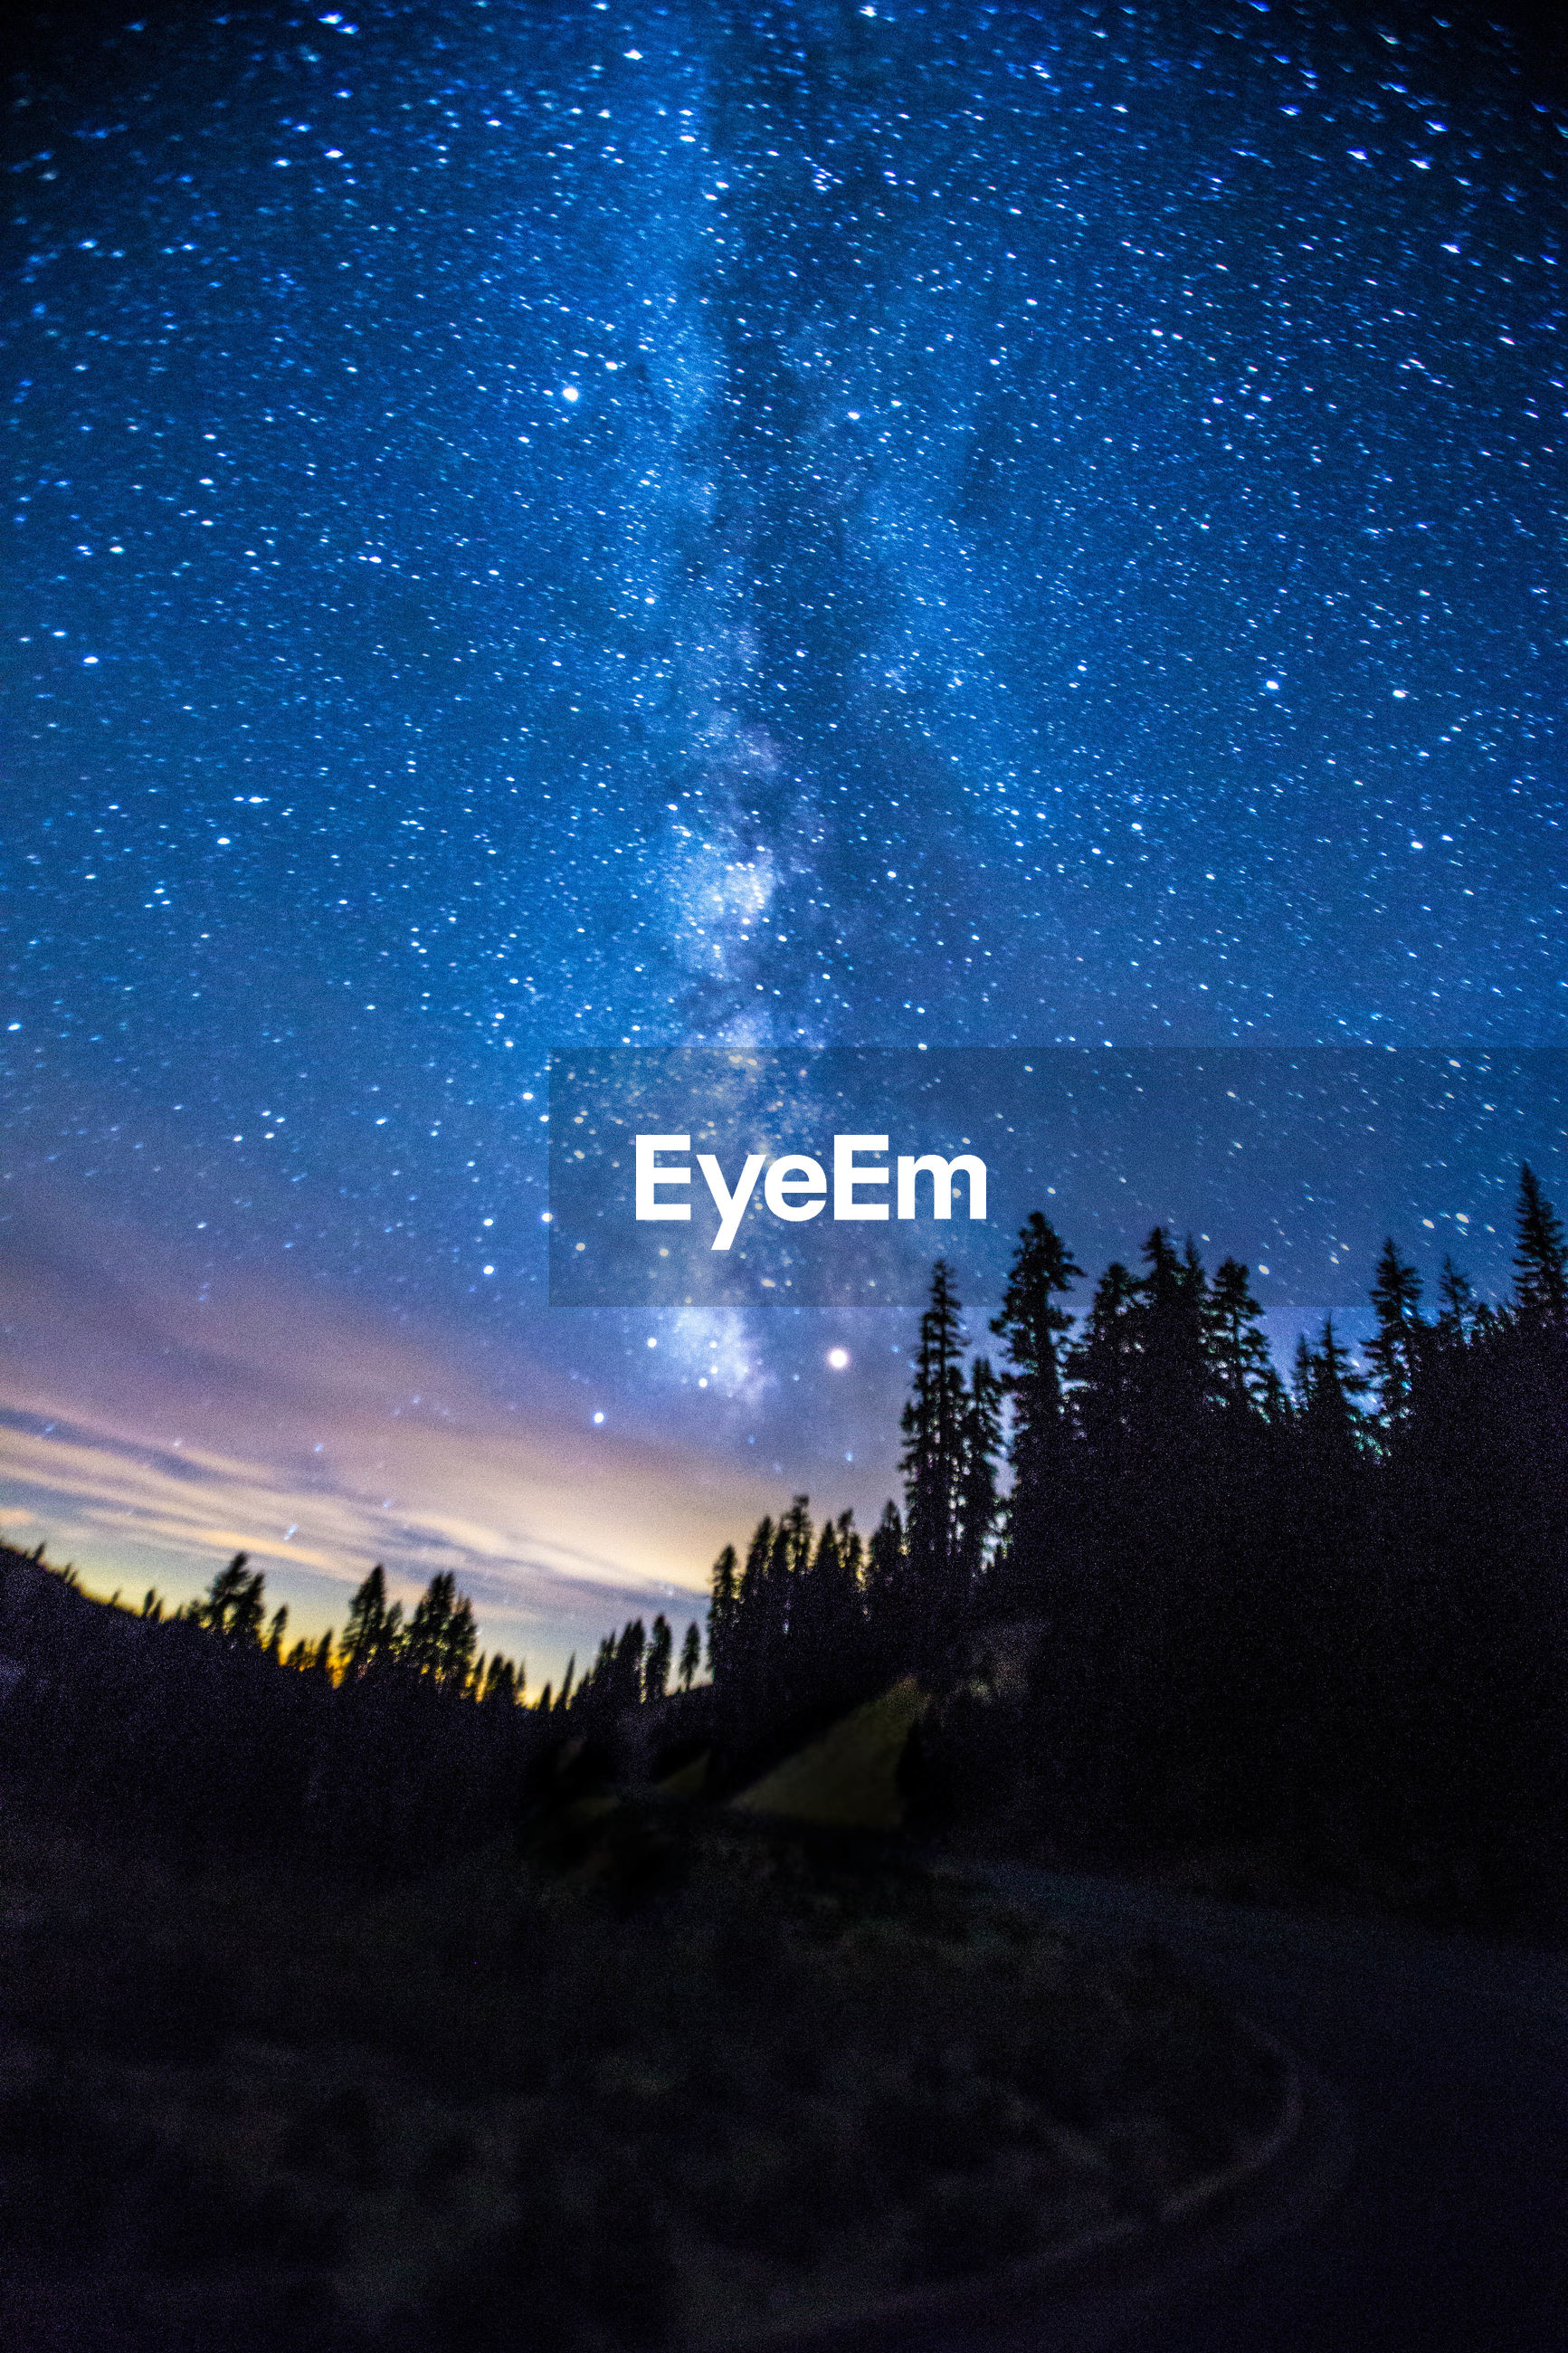 Silhouette trees on hill against milky way in starry sky at dusk